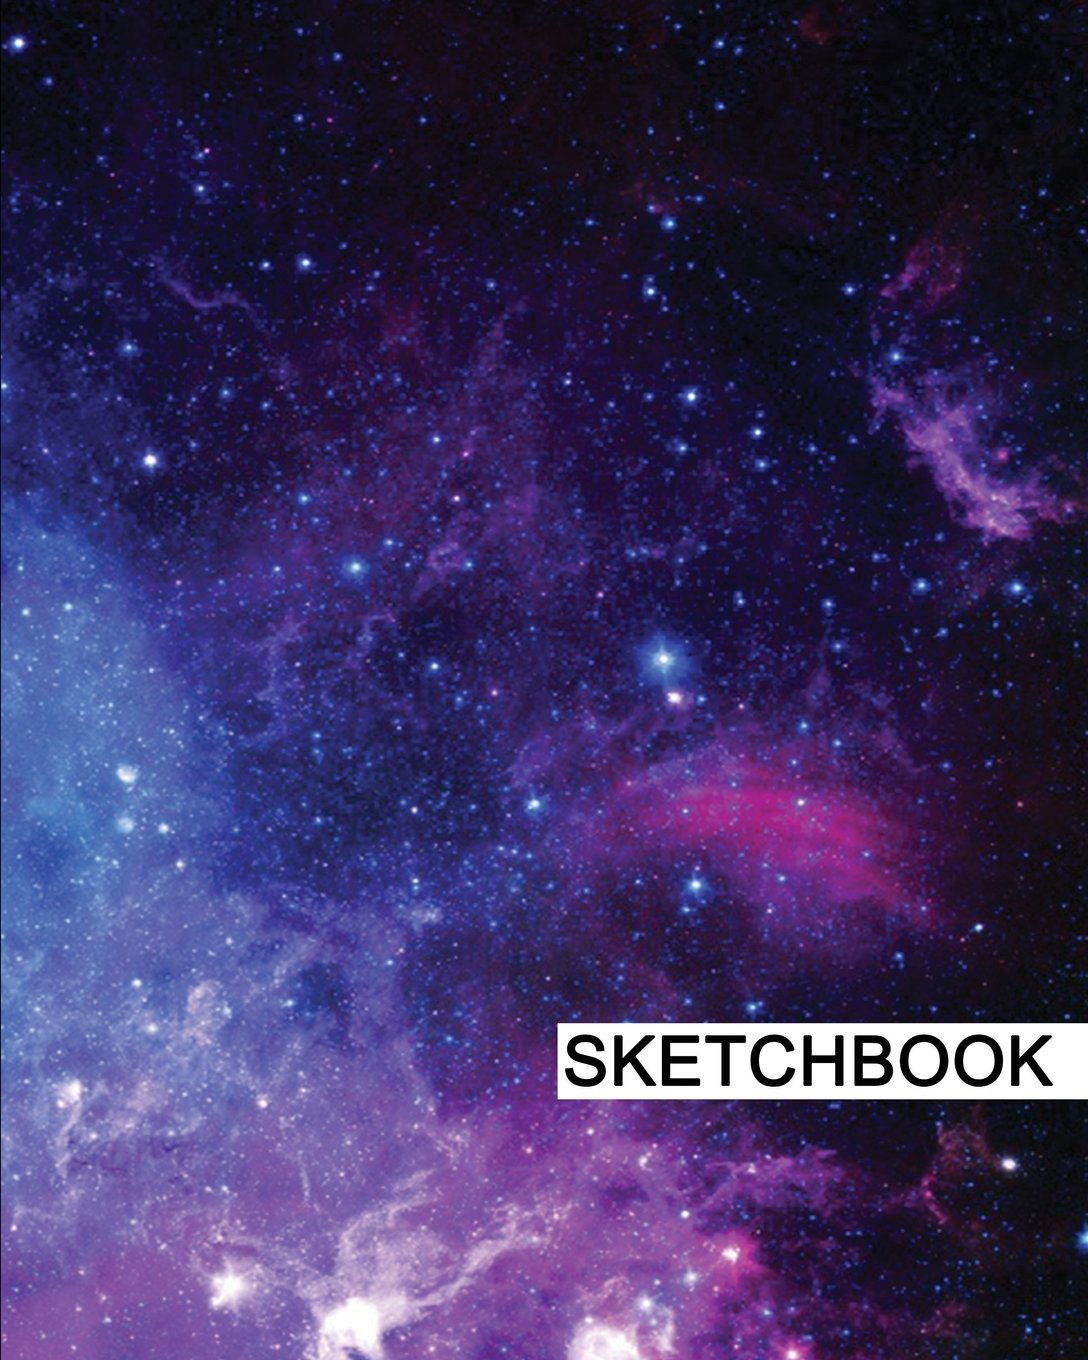 graphic royalty free download X unlruled notebook . Sketchbook drawing space